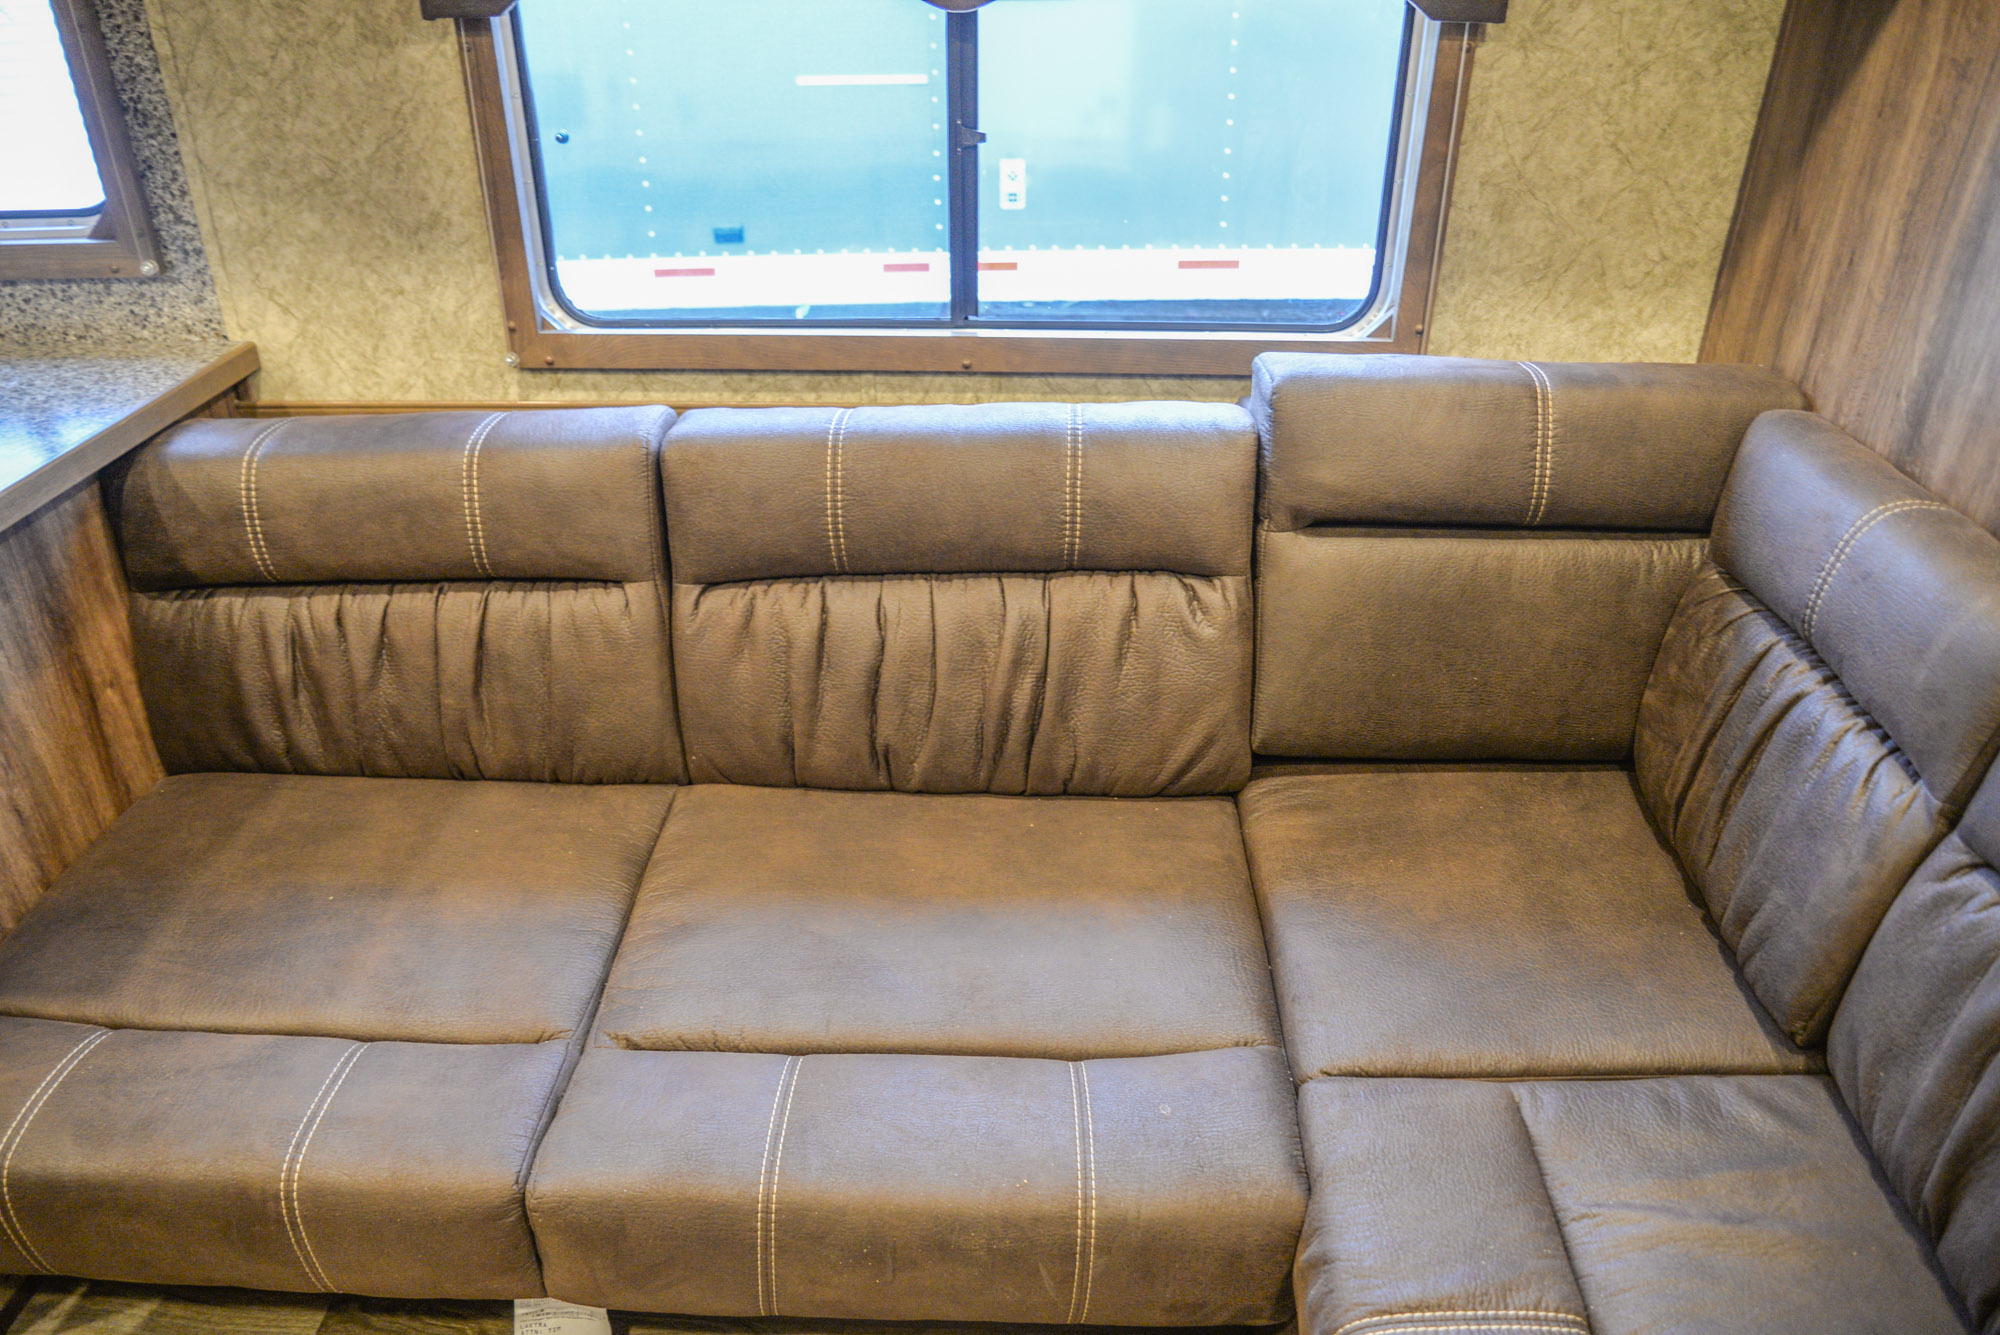 Sofa Bed in a C8X14LSR - Charger Edition Horse Trailer | Lakota Horse Trailers